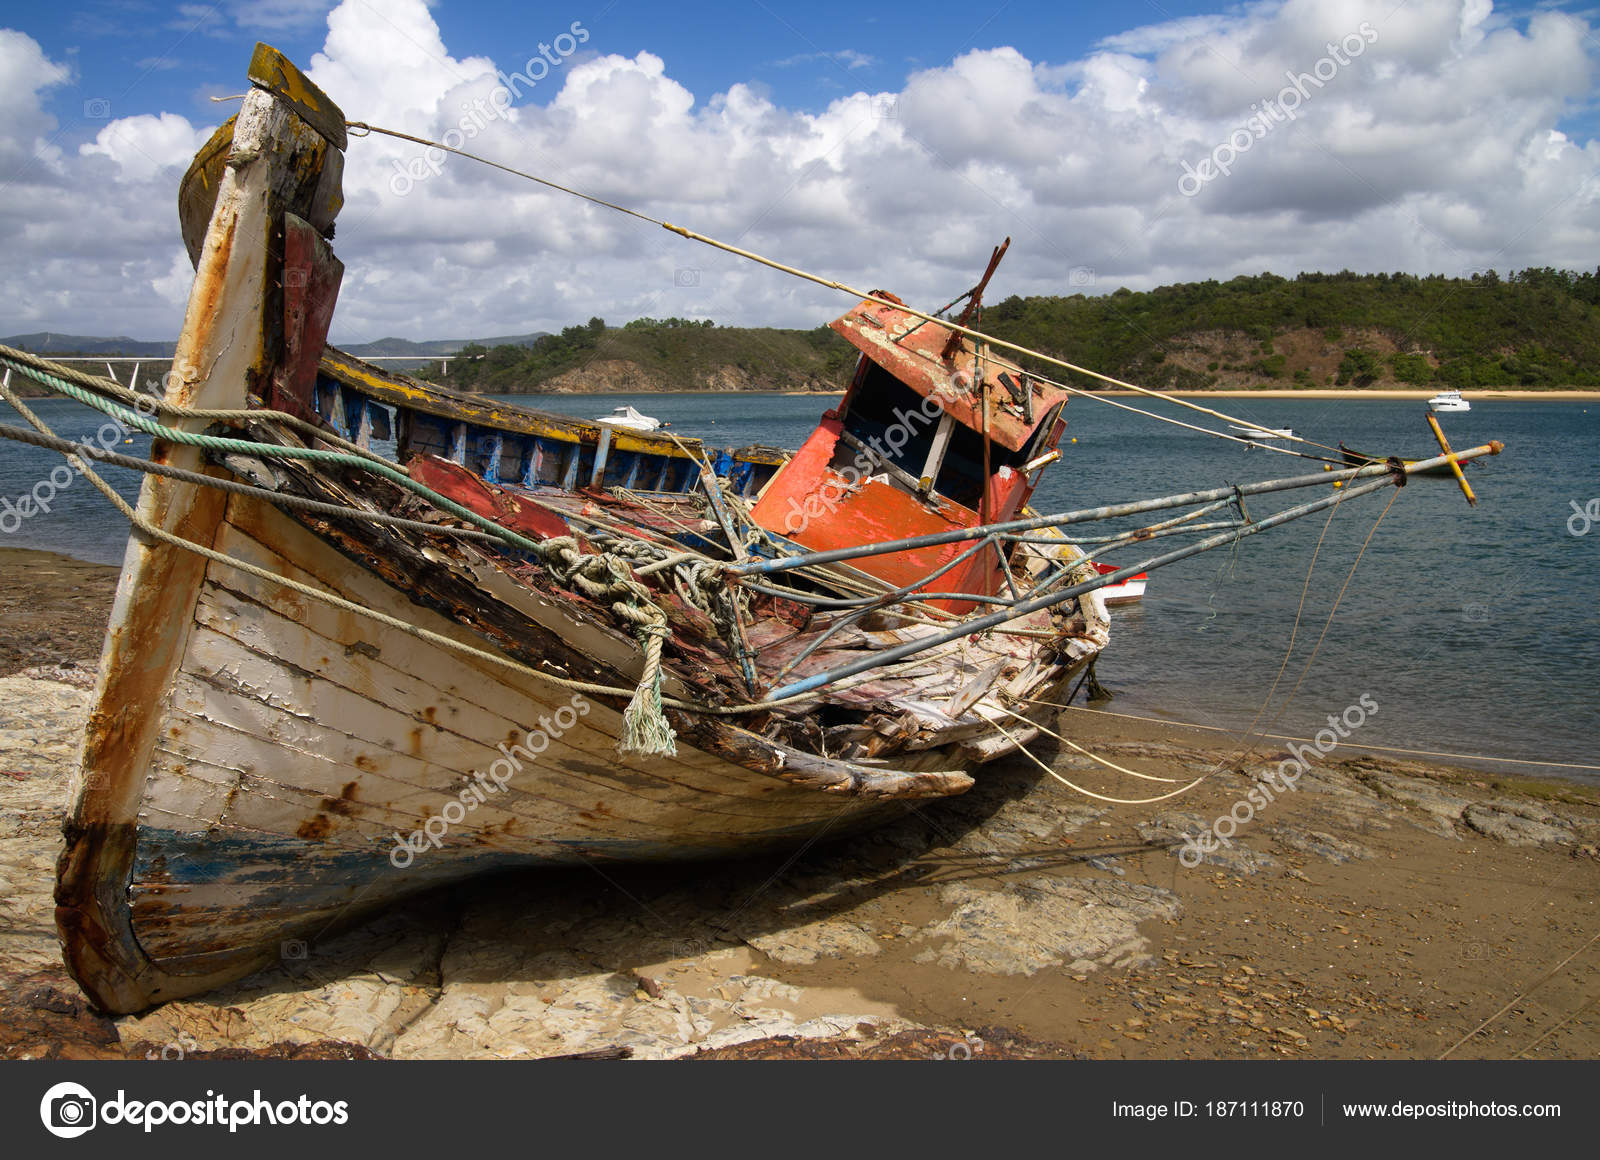 Old broken fishing boat wrecked against the river stock photo frontal view of an old fishing boat turned on a side wrecked and rotting on a rocky bank by the mira river bank bright blue clouded sky publicscrutiny Image collections